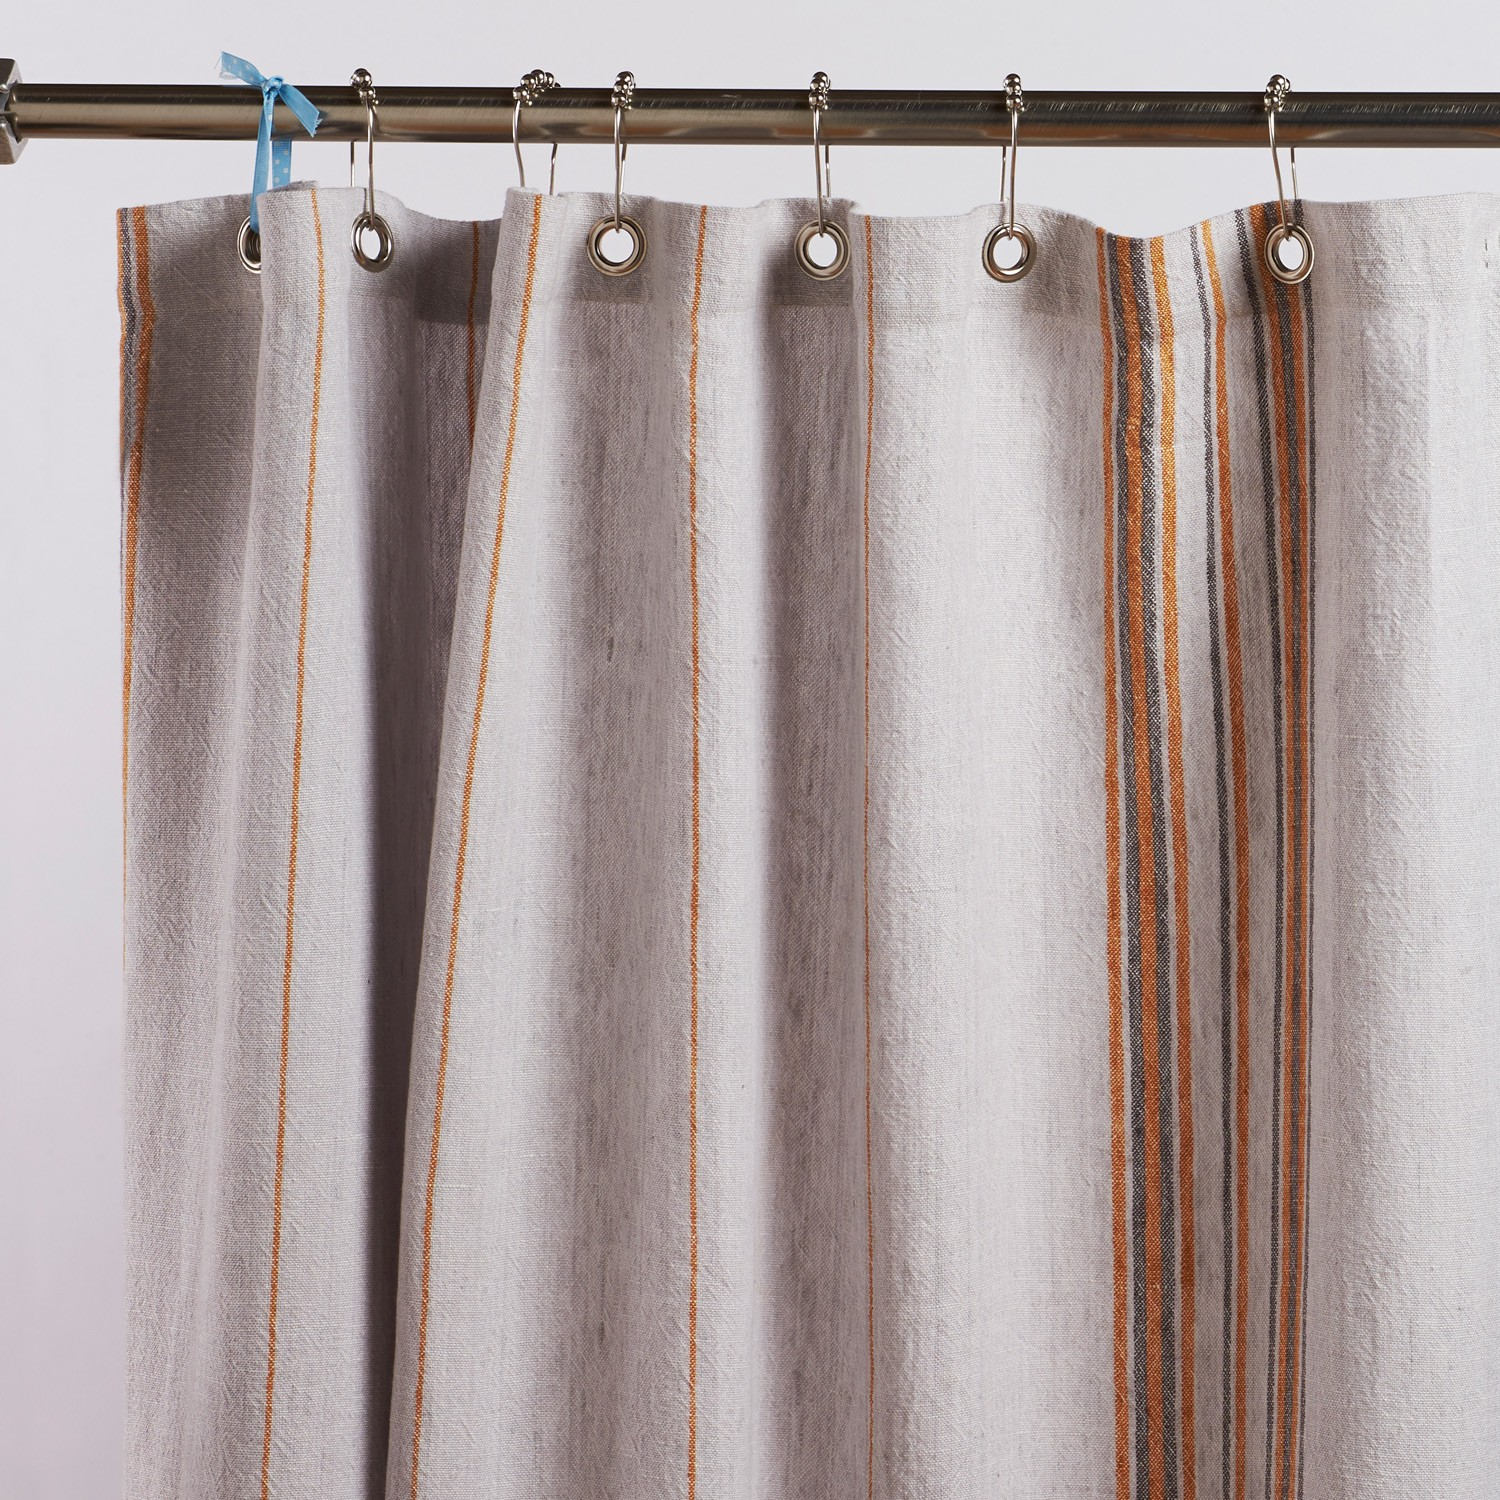 Extendable Shower Curtain Rod | Short Curved Shower Rod | Shower Curtain Tension Rod